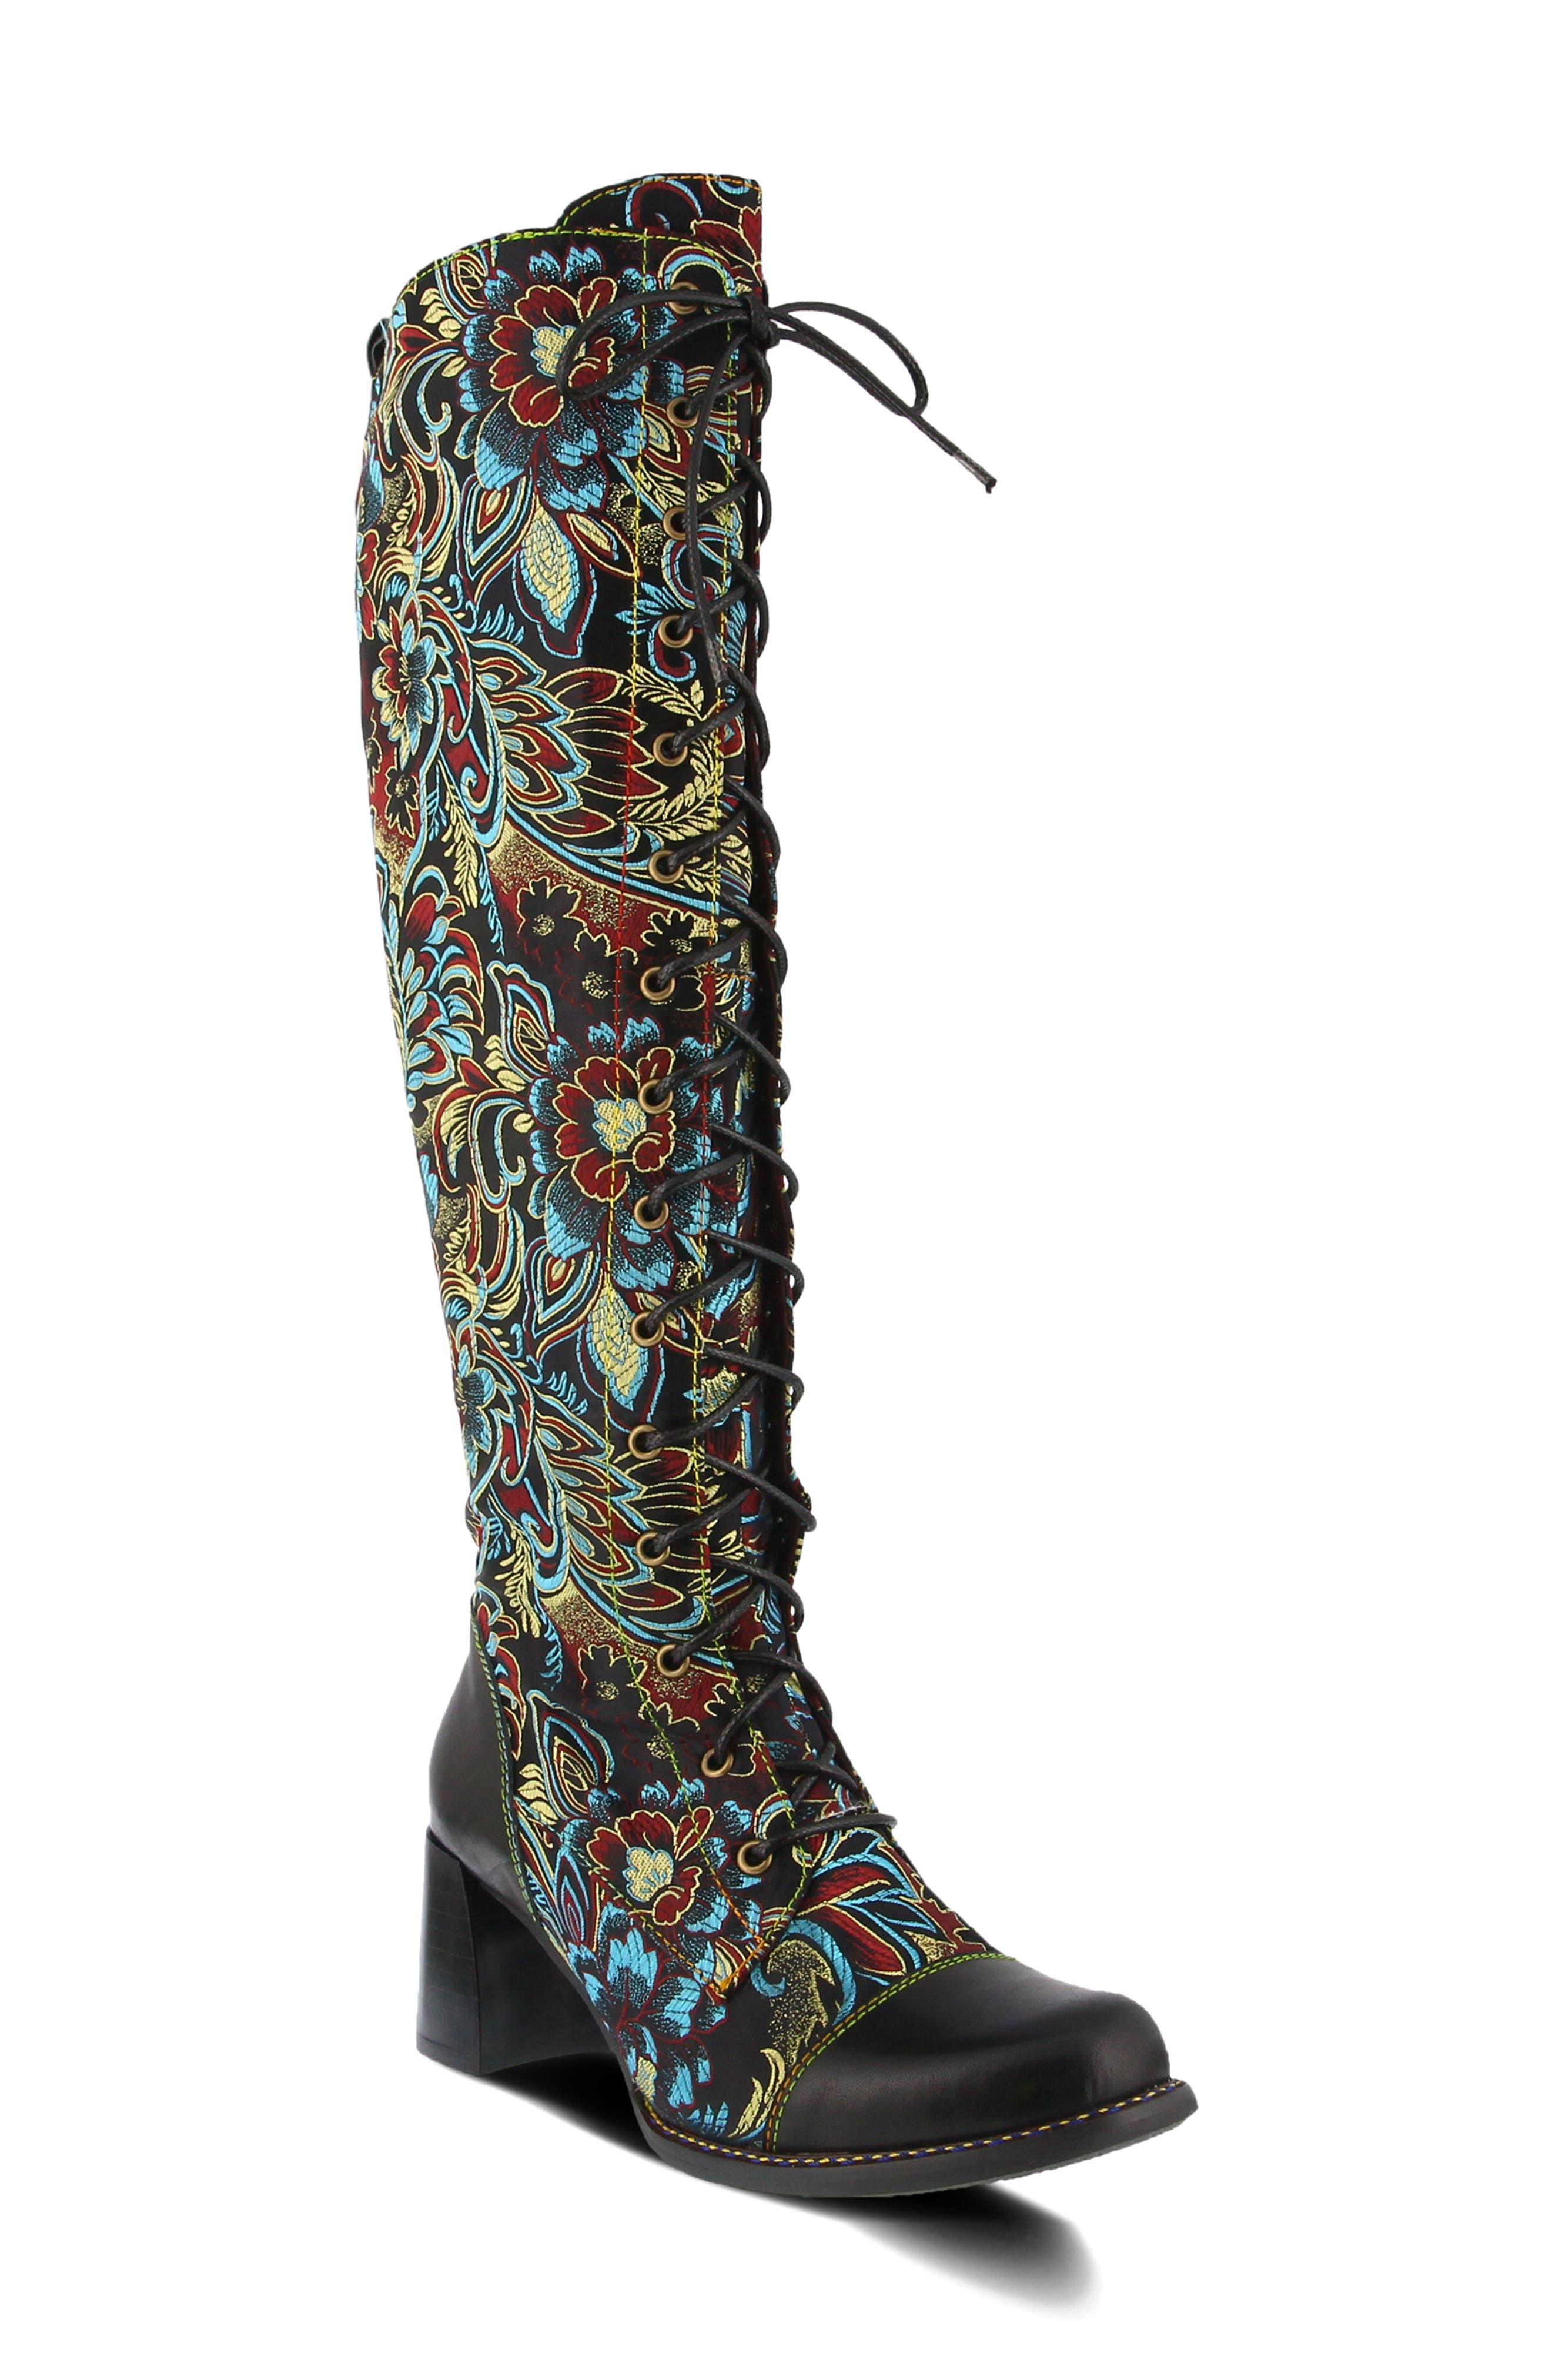 A boot this beautifully crafted is a rarity- it\\\'s made from floral jacquard with hand-painted leather trim and rainbow stitching for added richness. Style Name:L\\\'Artiste Rarity Knee High Boot (Women). Style Number: 6117450. Available in stores.